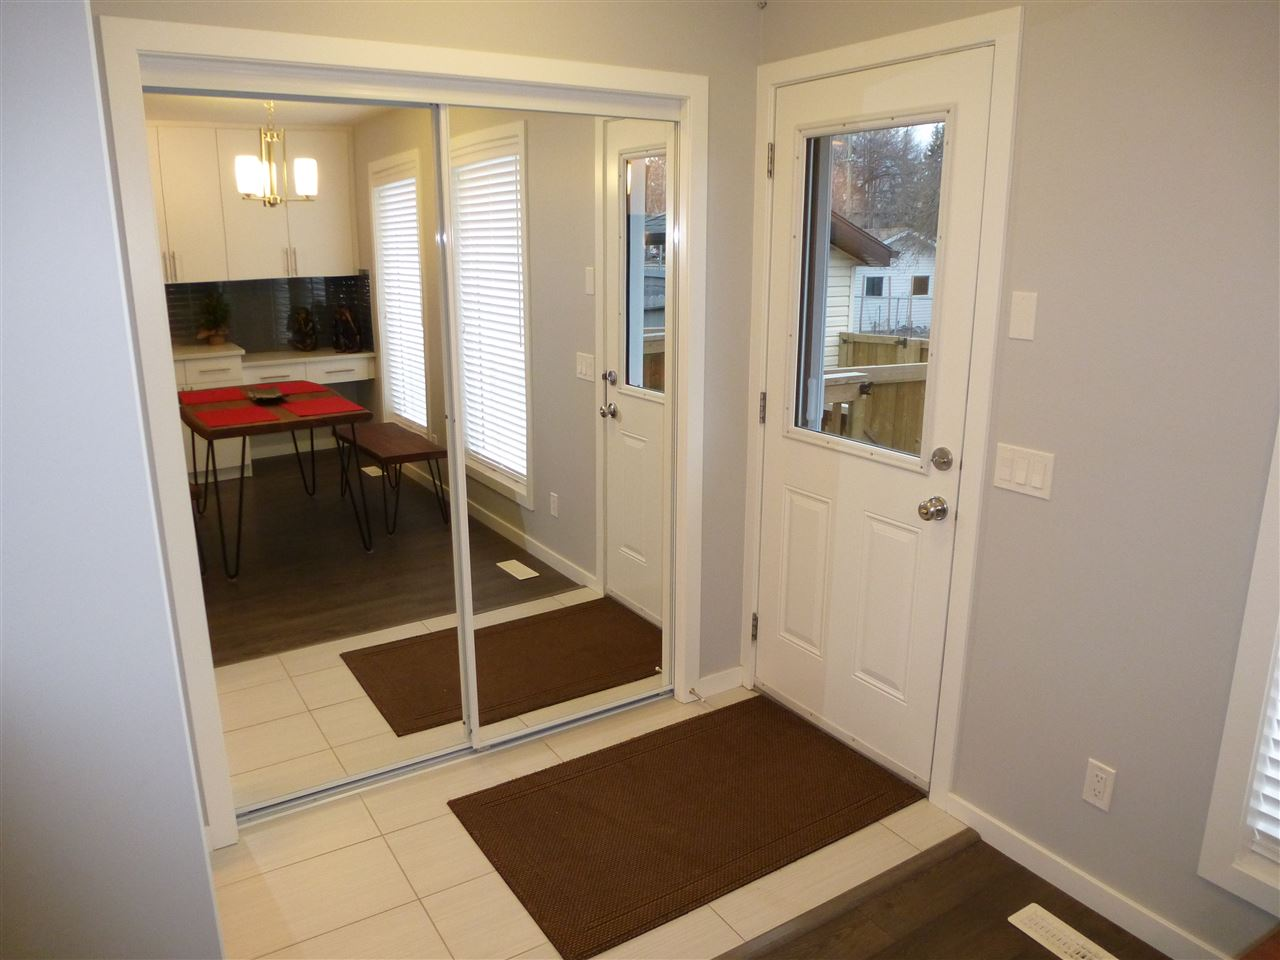 Photo 12: 14835 103 Avenue in Edmonton: Zone 21 House Half Duplex for sale : MLS(r) # E4057701